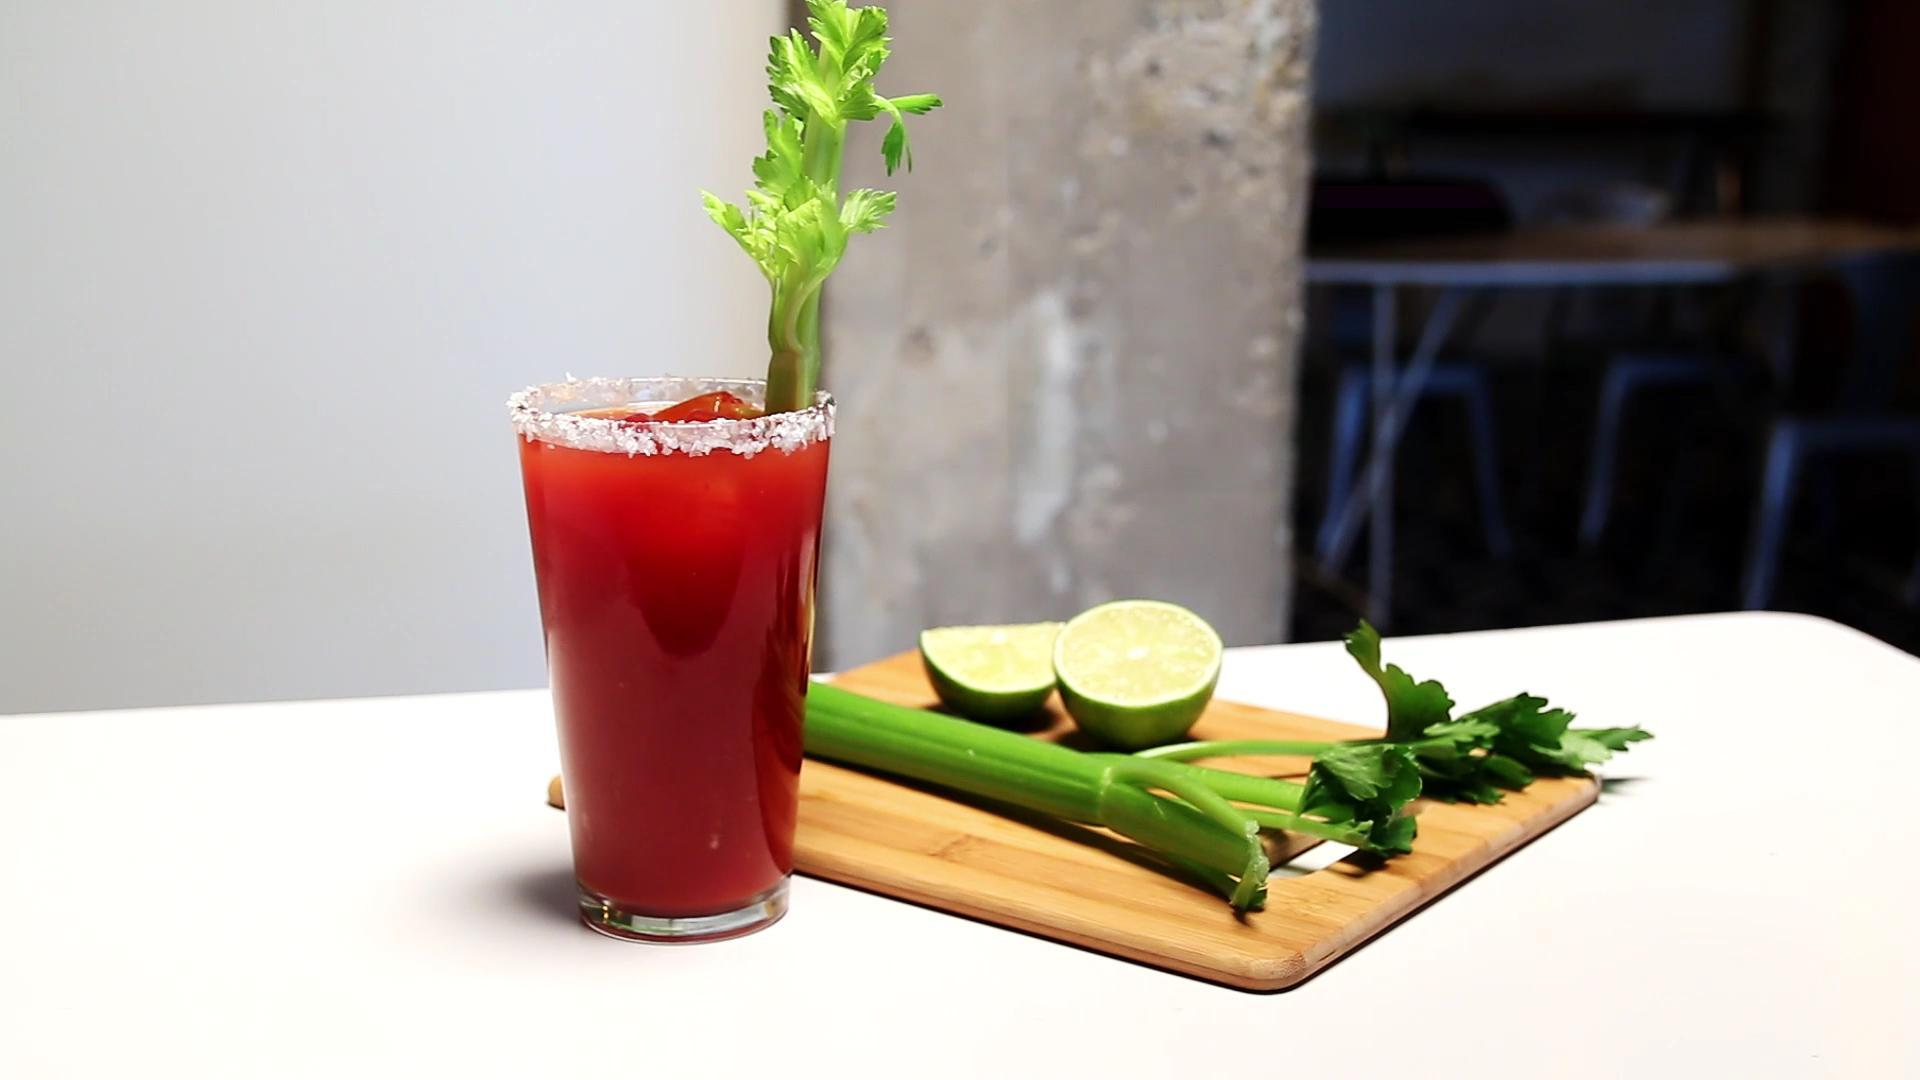 How to Make a Sriracha Michelada